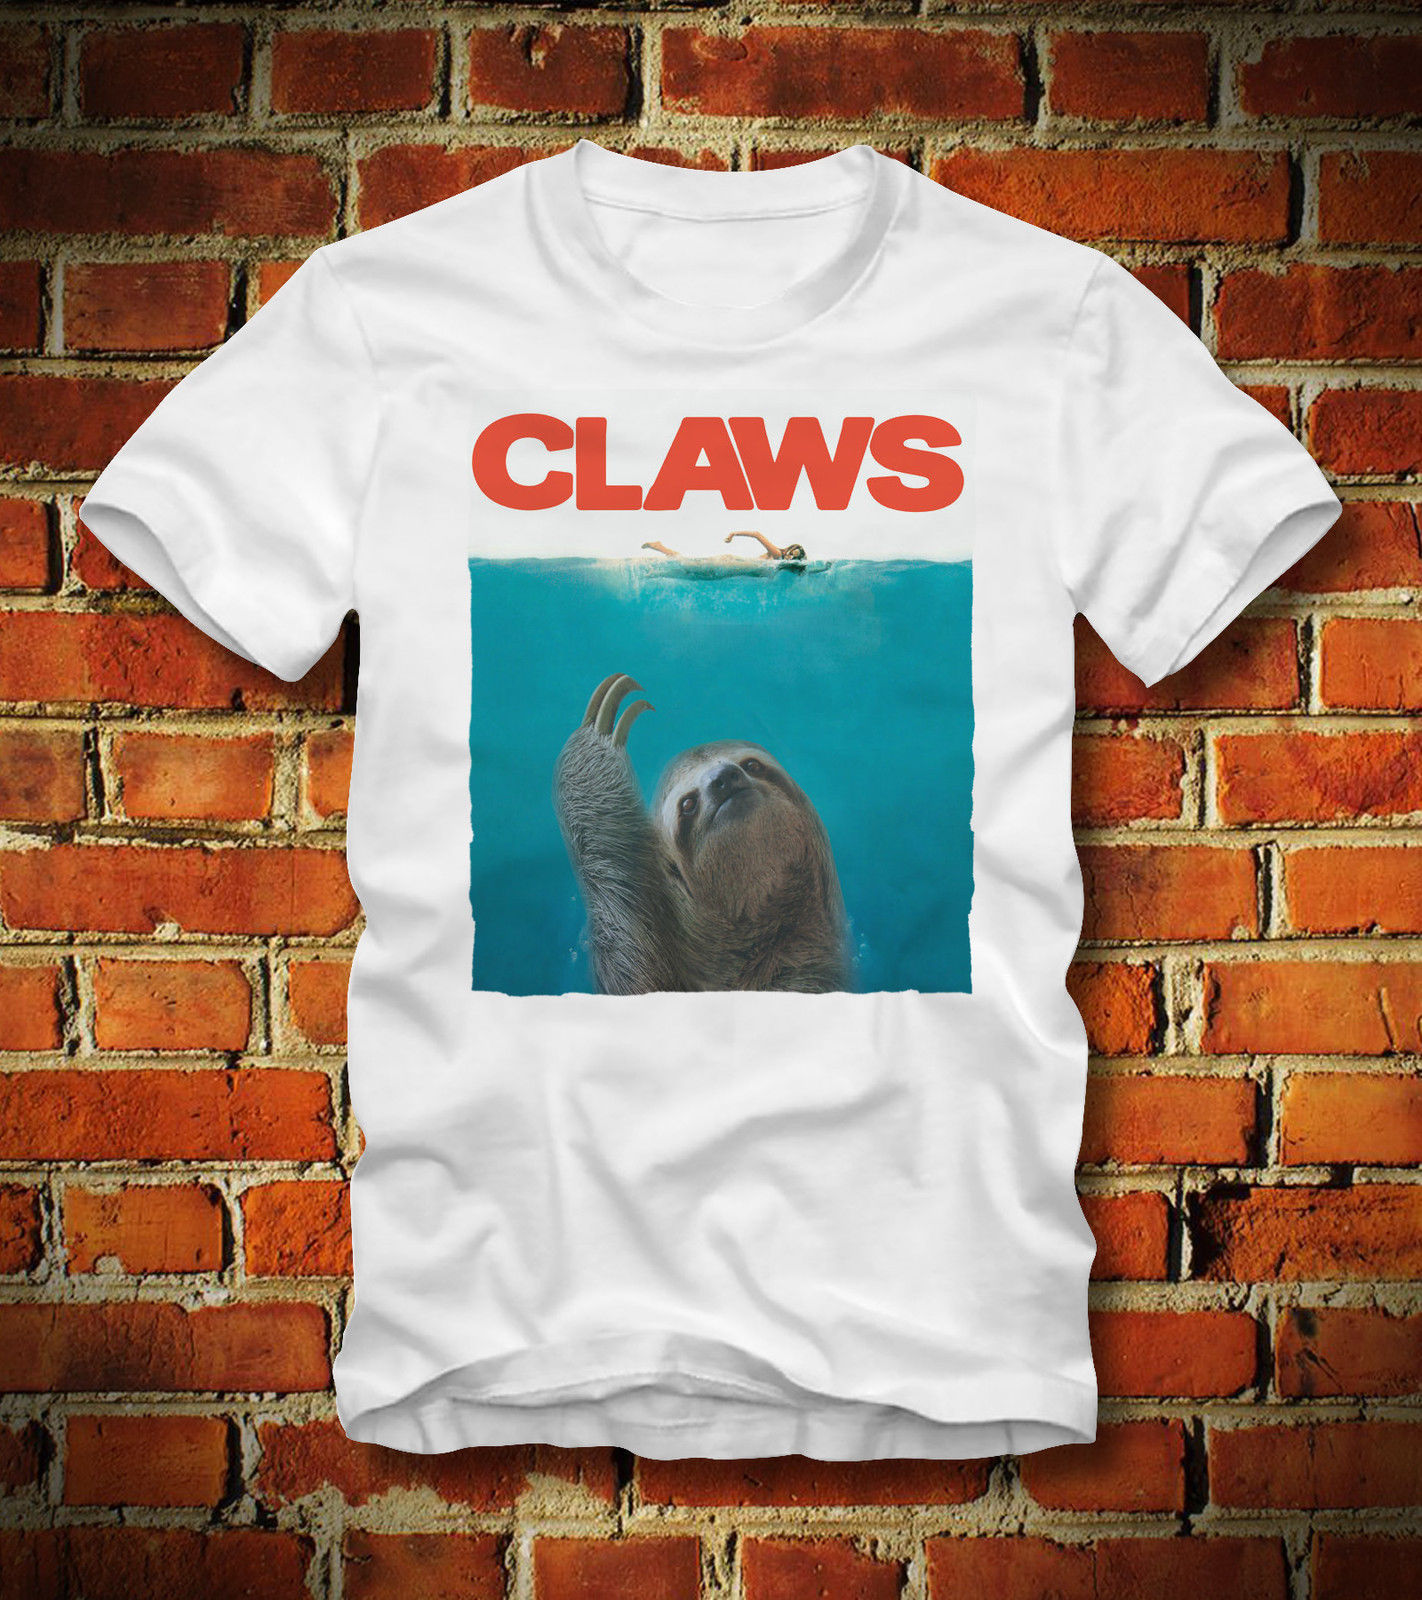 T SHIRT CLAWS SLOTH DER WEISSE HAI JAWS FAULTIER KLAUEN HORROR MOVIECartoon t shirt men Unisex New Fashion tshirt free shipping